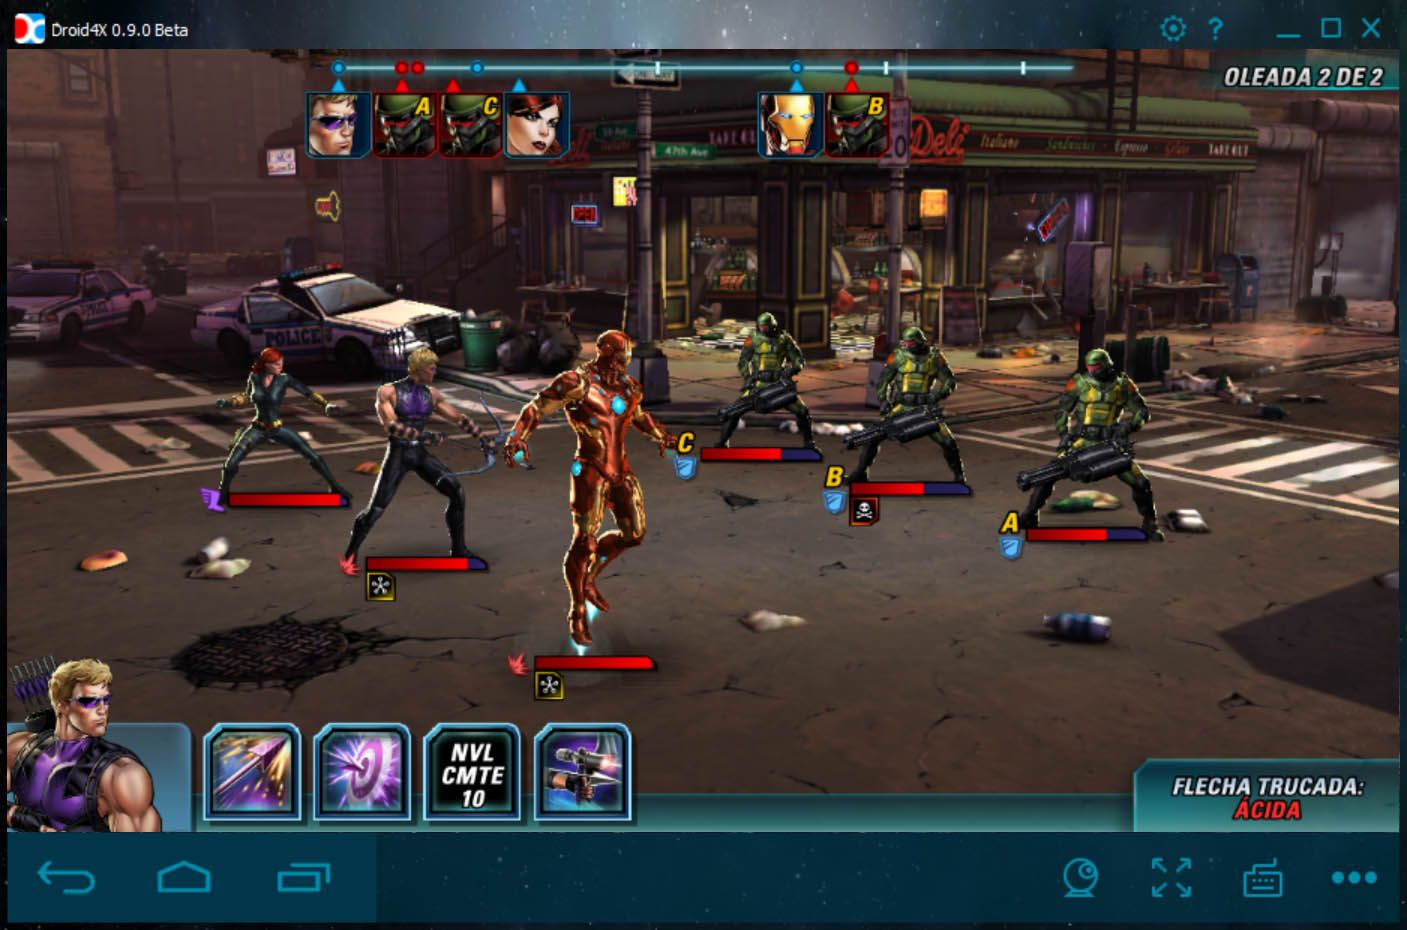 Droid4x Marvel Avengers Alliance 2